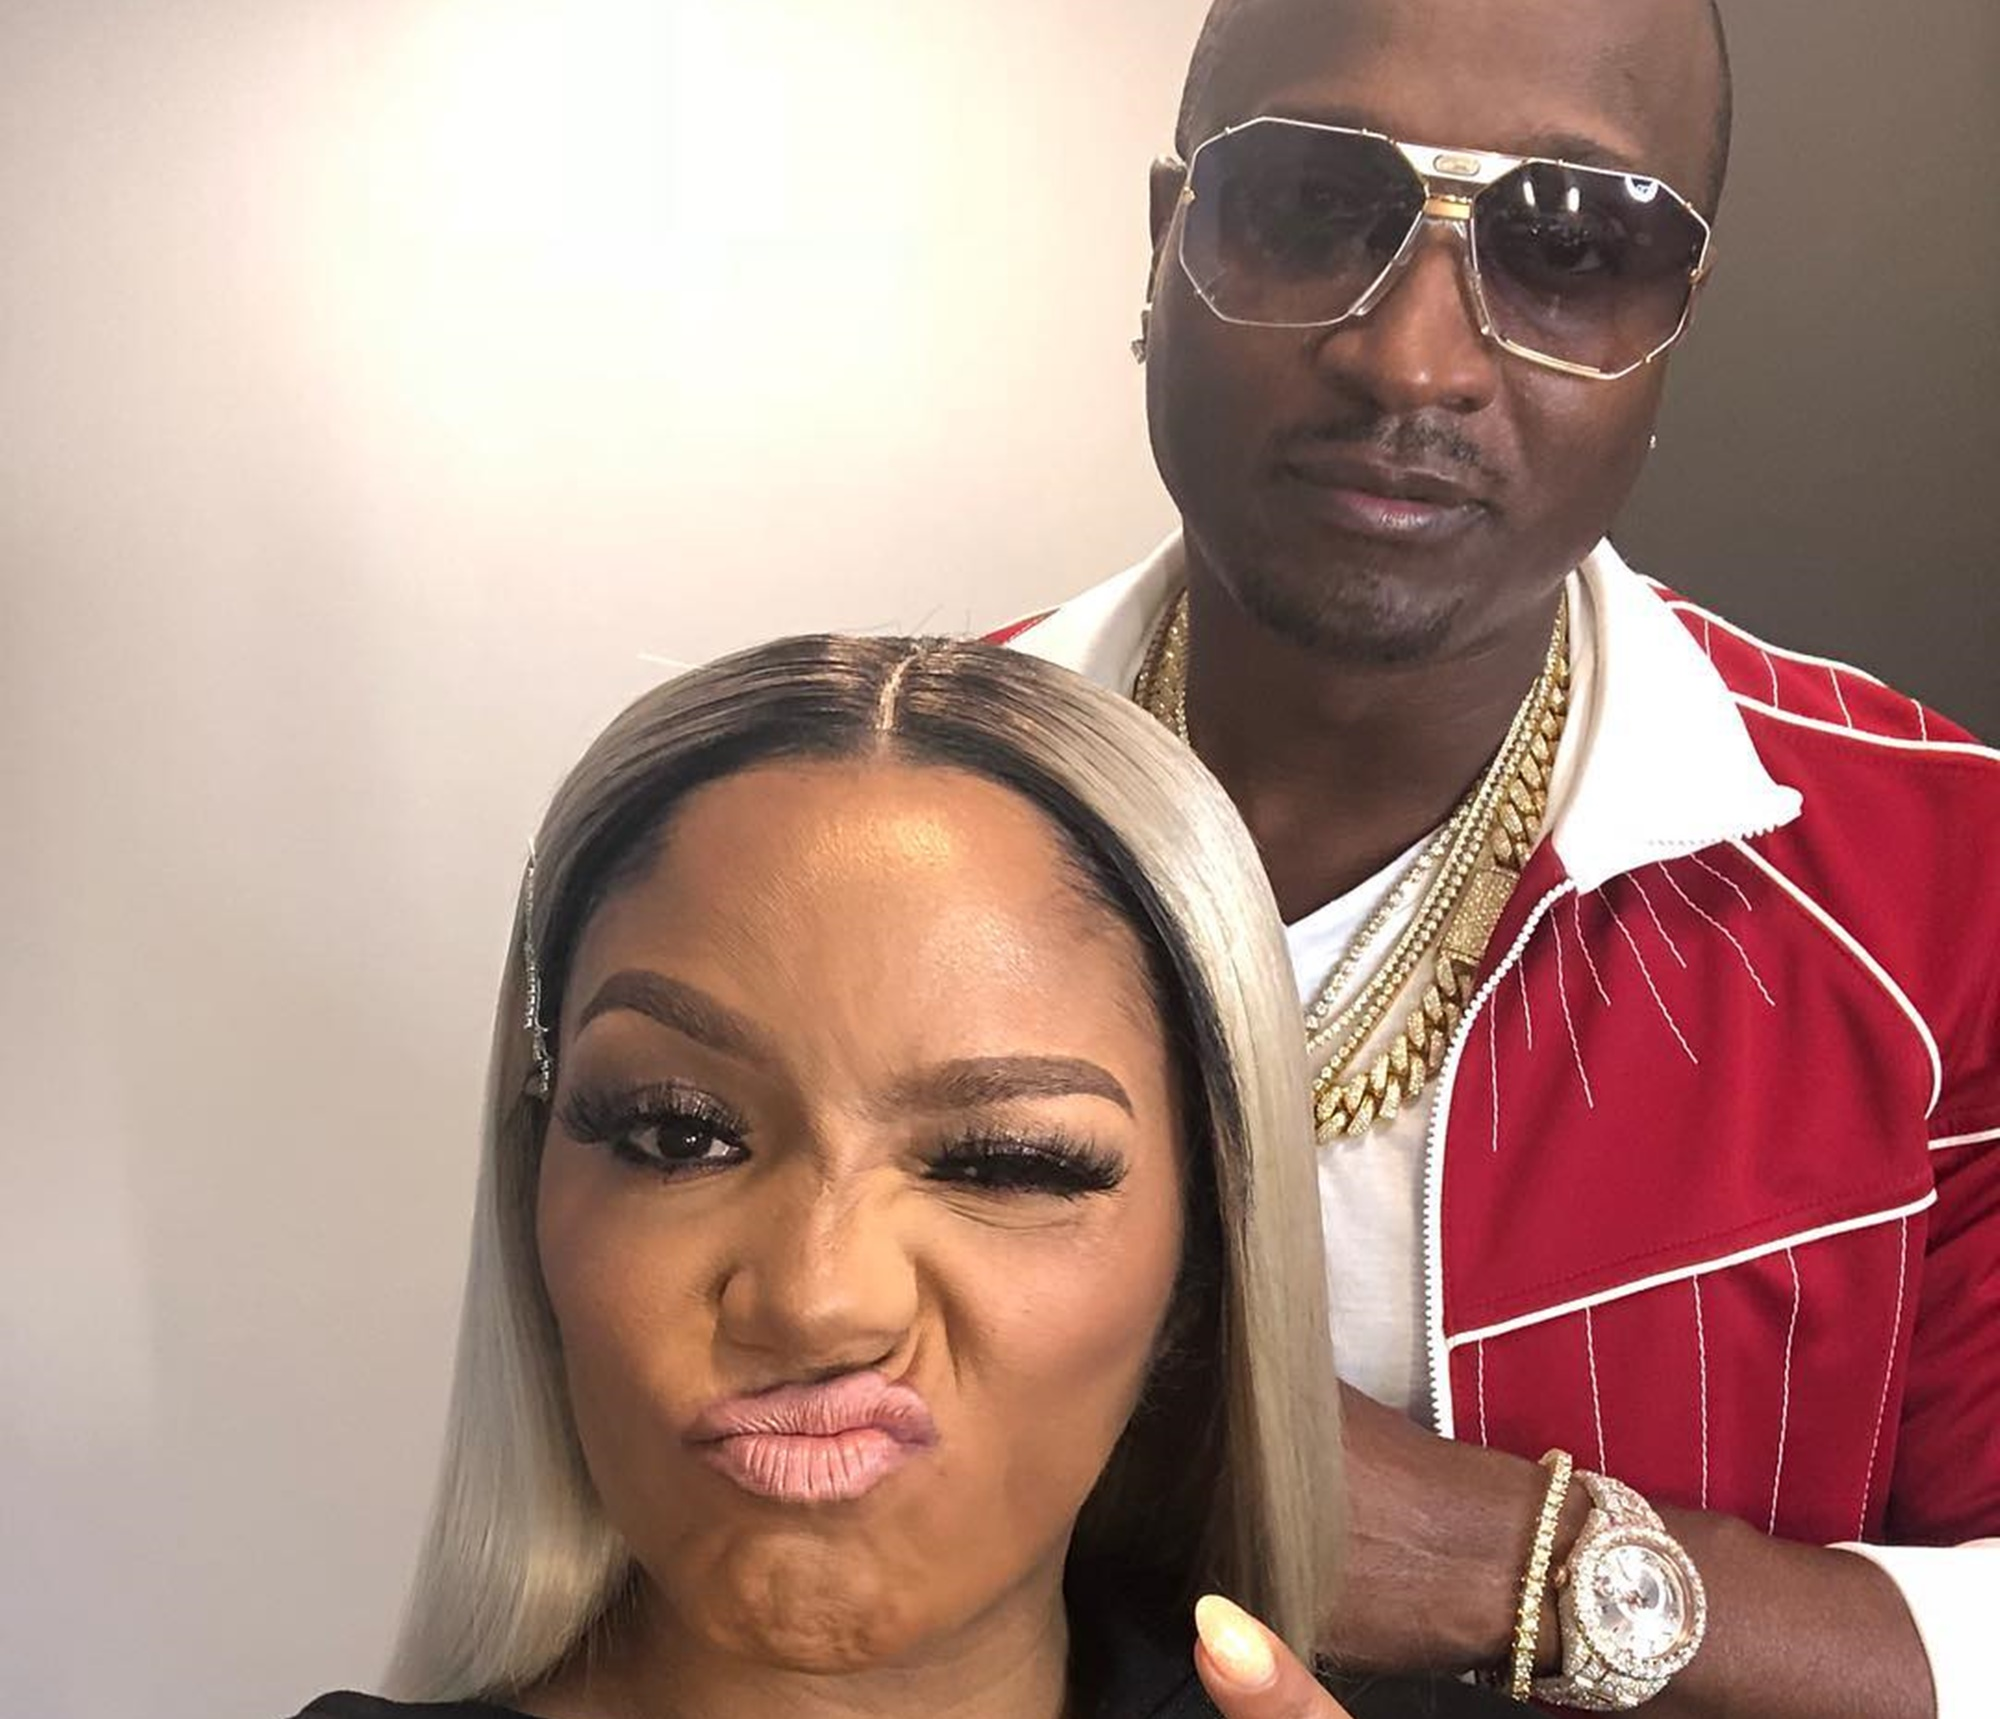 Rasheeda Frost Posts Video From Her Date Night With Kirk Frost And Fans Love To See Them Cuddle - Check Out The Sweet Kiss Kirk Gives Her